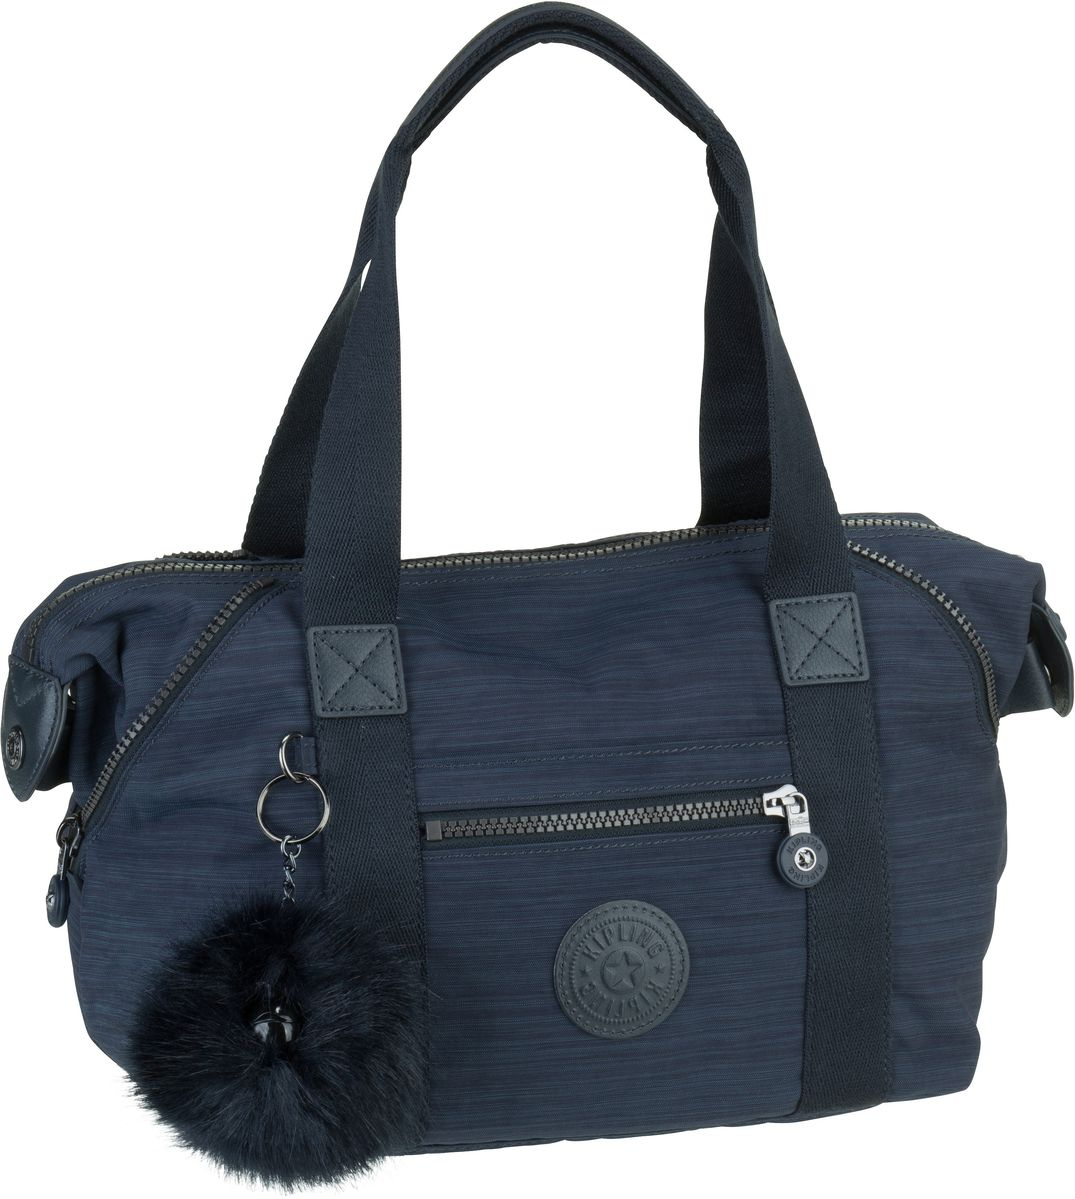 Handtasche Art Mini Basic Plus True Dazz Navy (innen: Grau) (13 Liter)